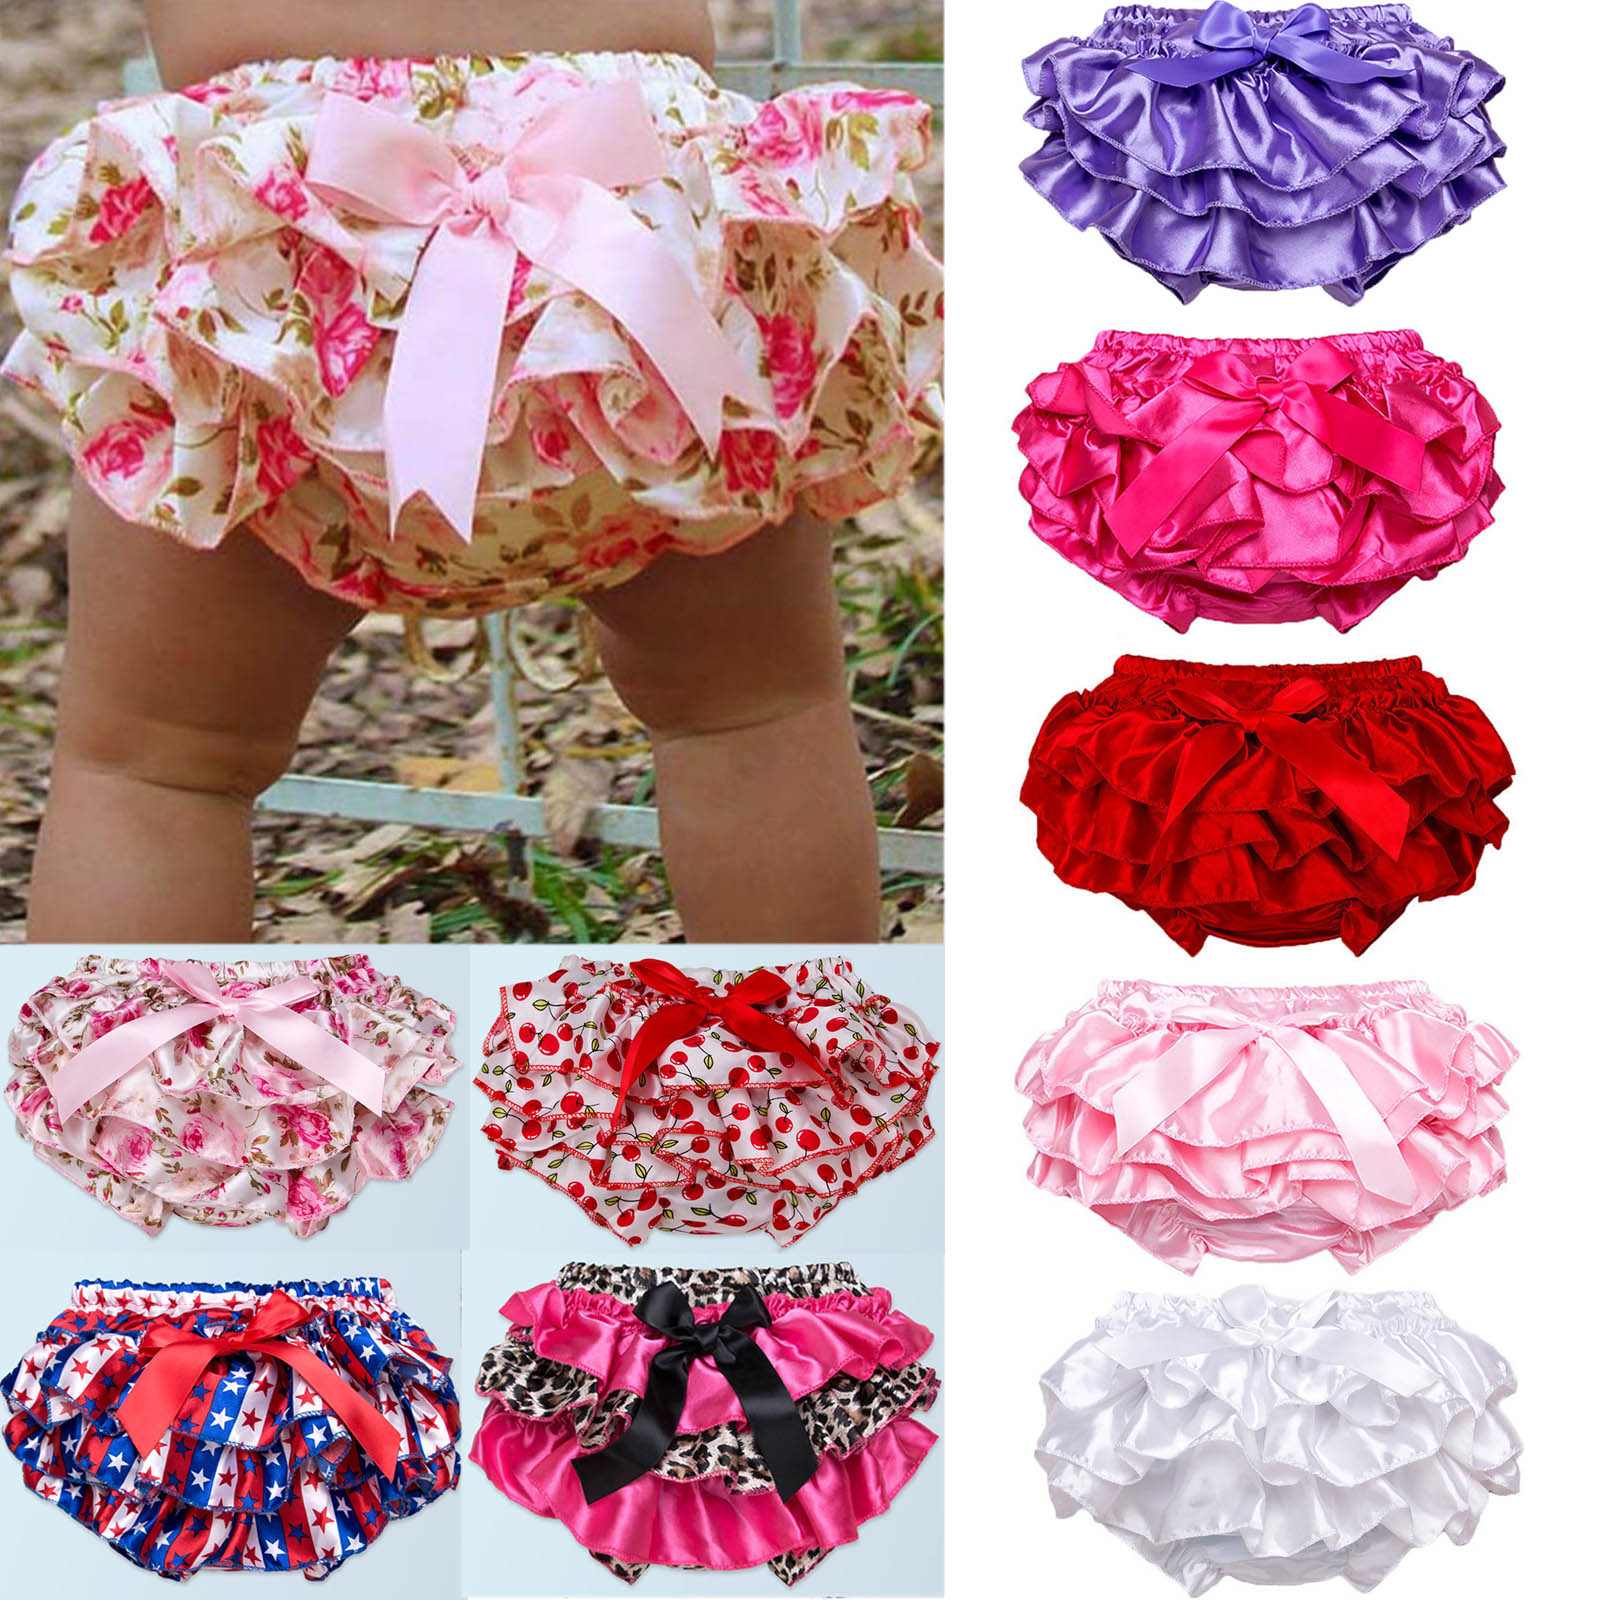 Newborn Baby Girls Boys Floral Shorts Nappy Cover Ruffle PP Panties Bloomers